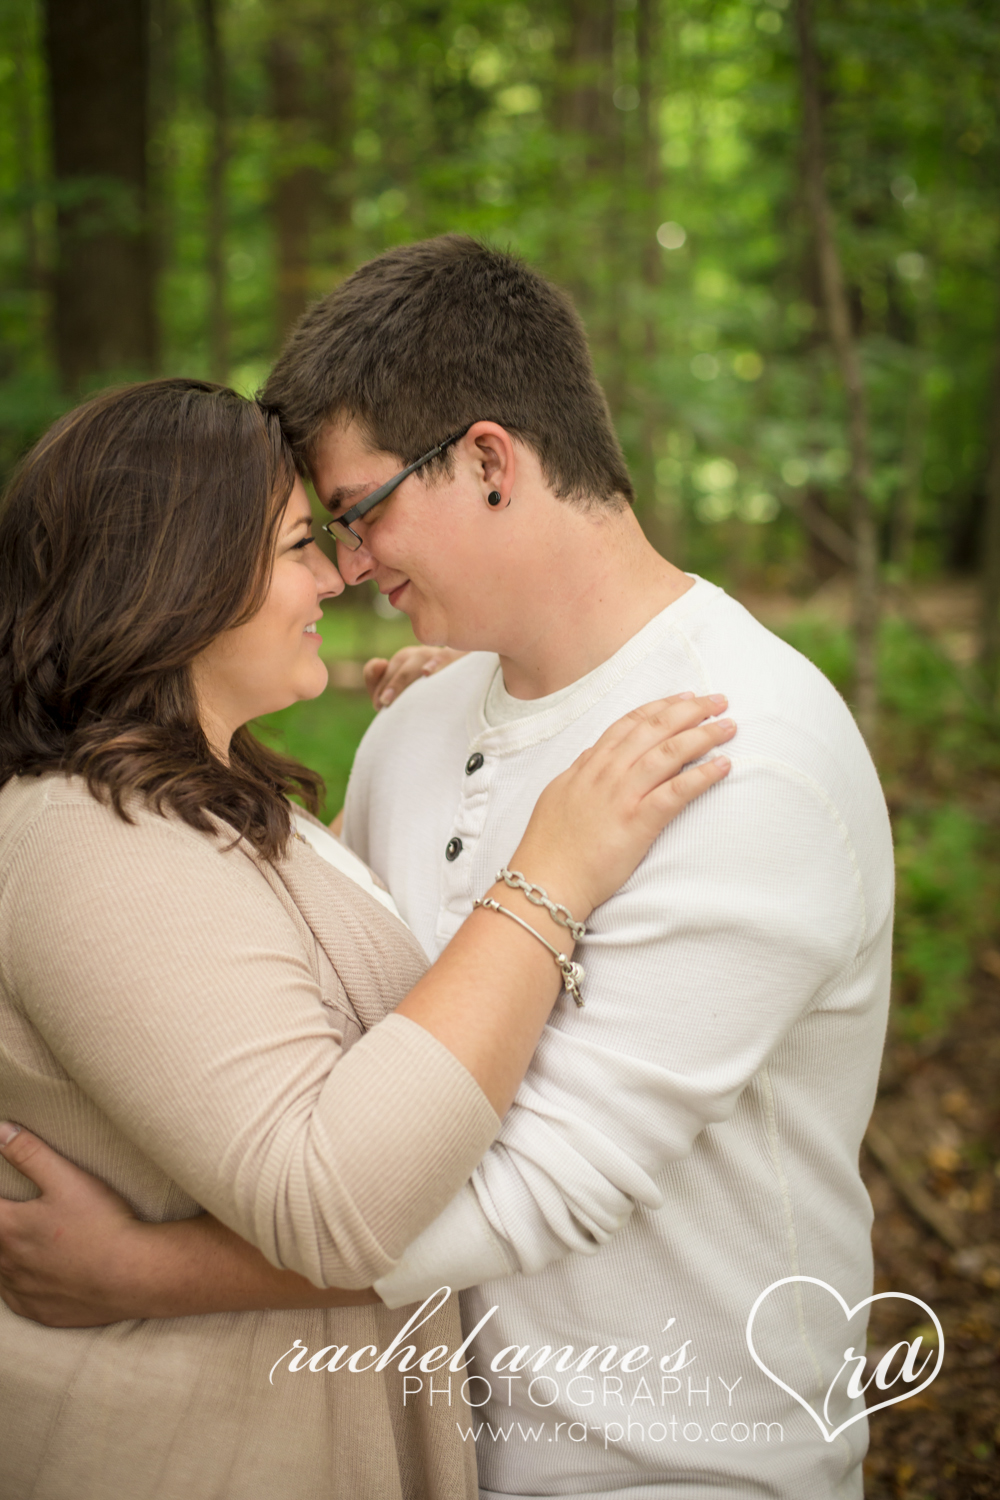 006-SSL-CLEARFIELD ENGAGEMENT PHOTOS.jpg